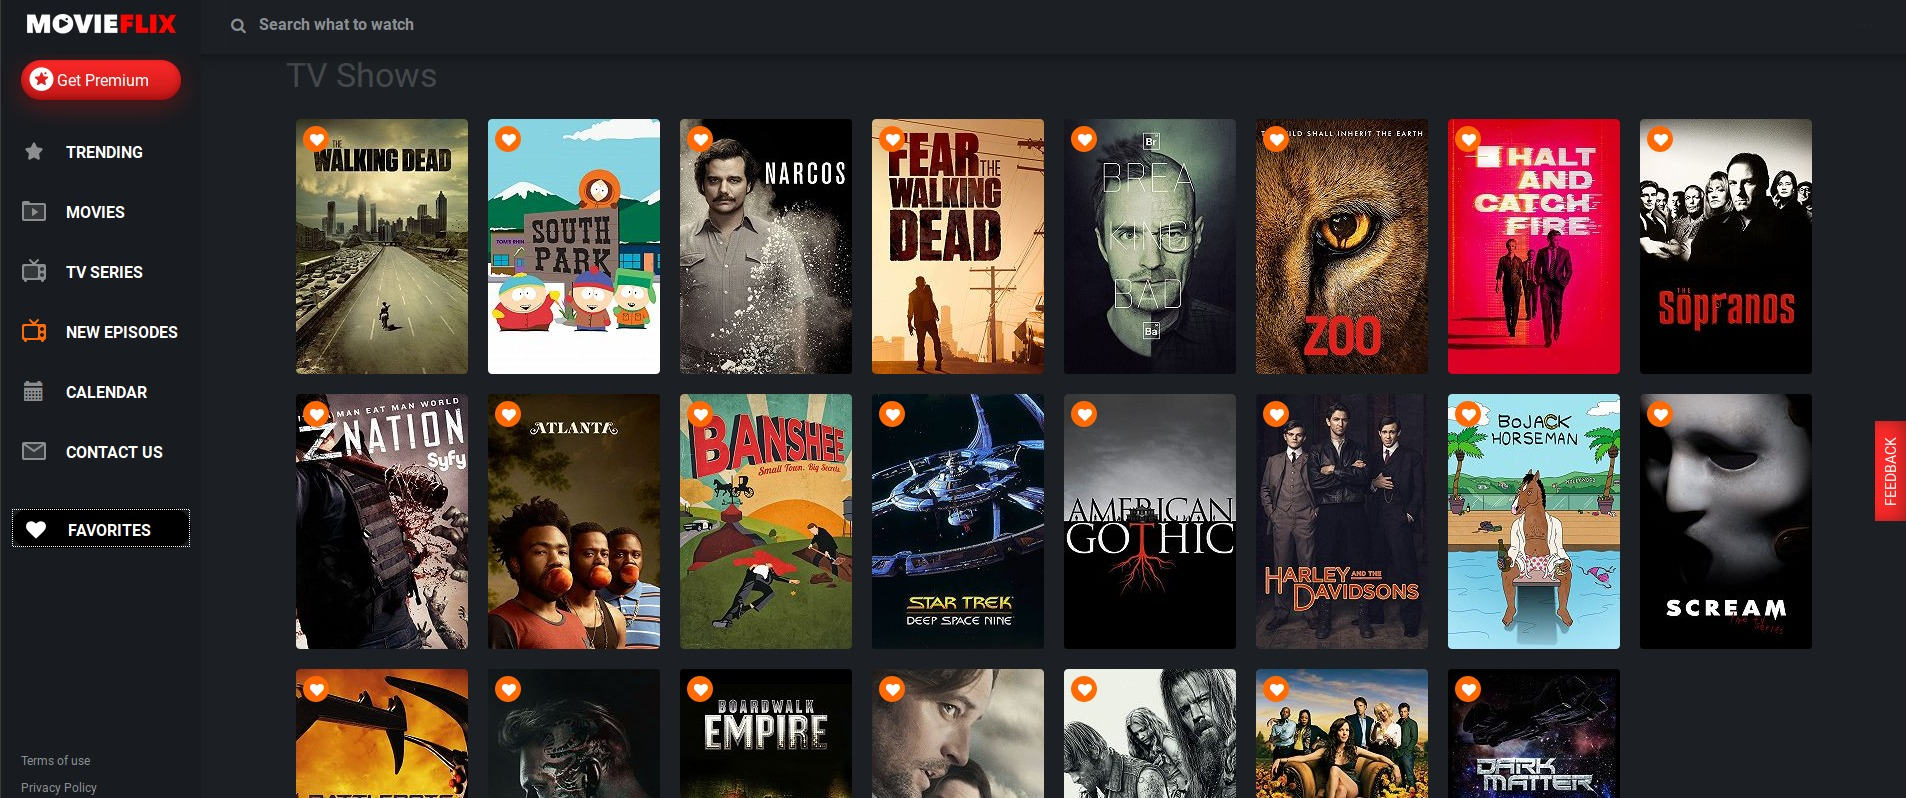 Moviesflix Website 2021 - 480p 720p 300MB Hindi Dubbed Dual Audio Movies Download - Is it Safe & Legal?